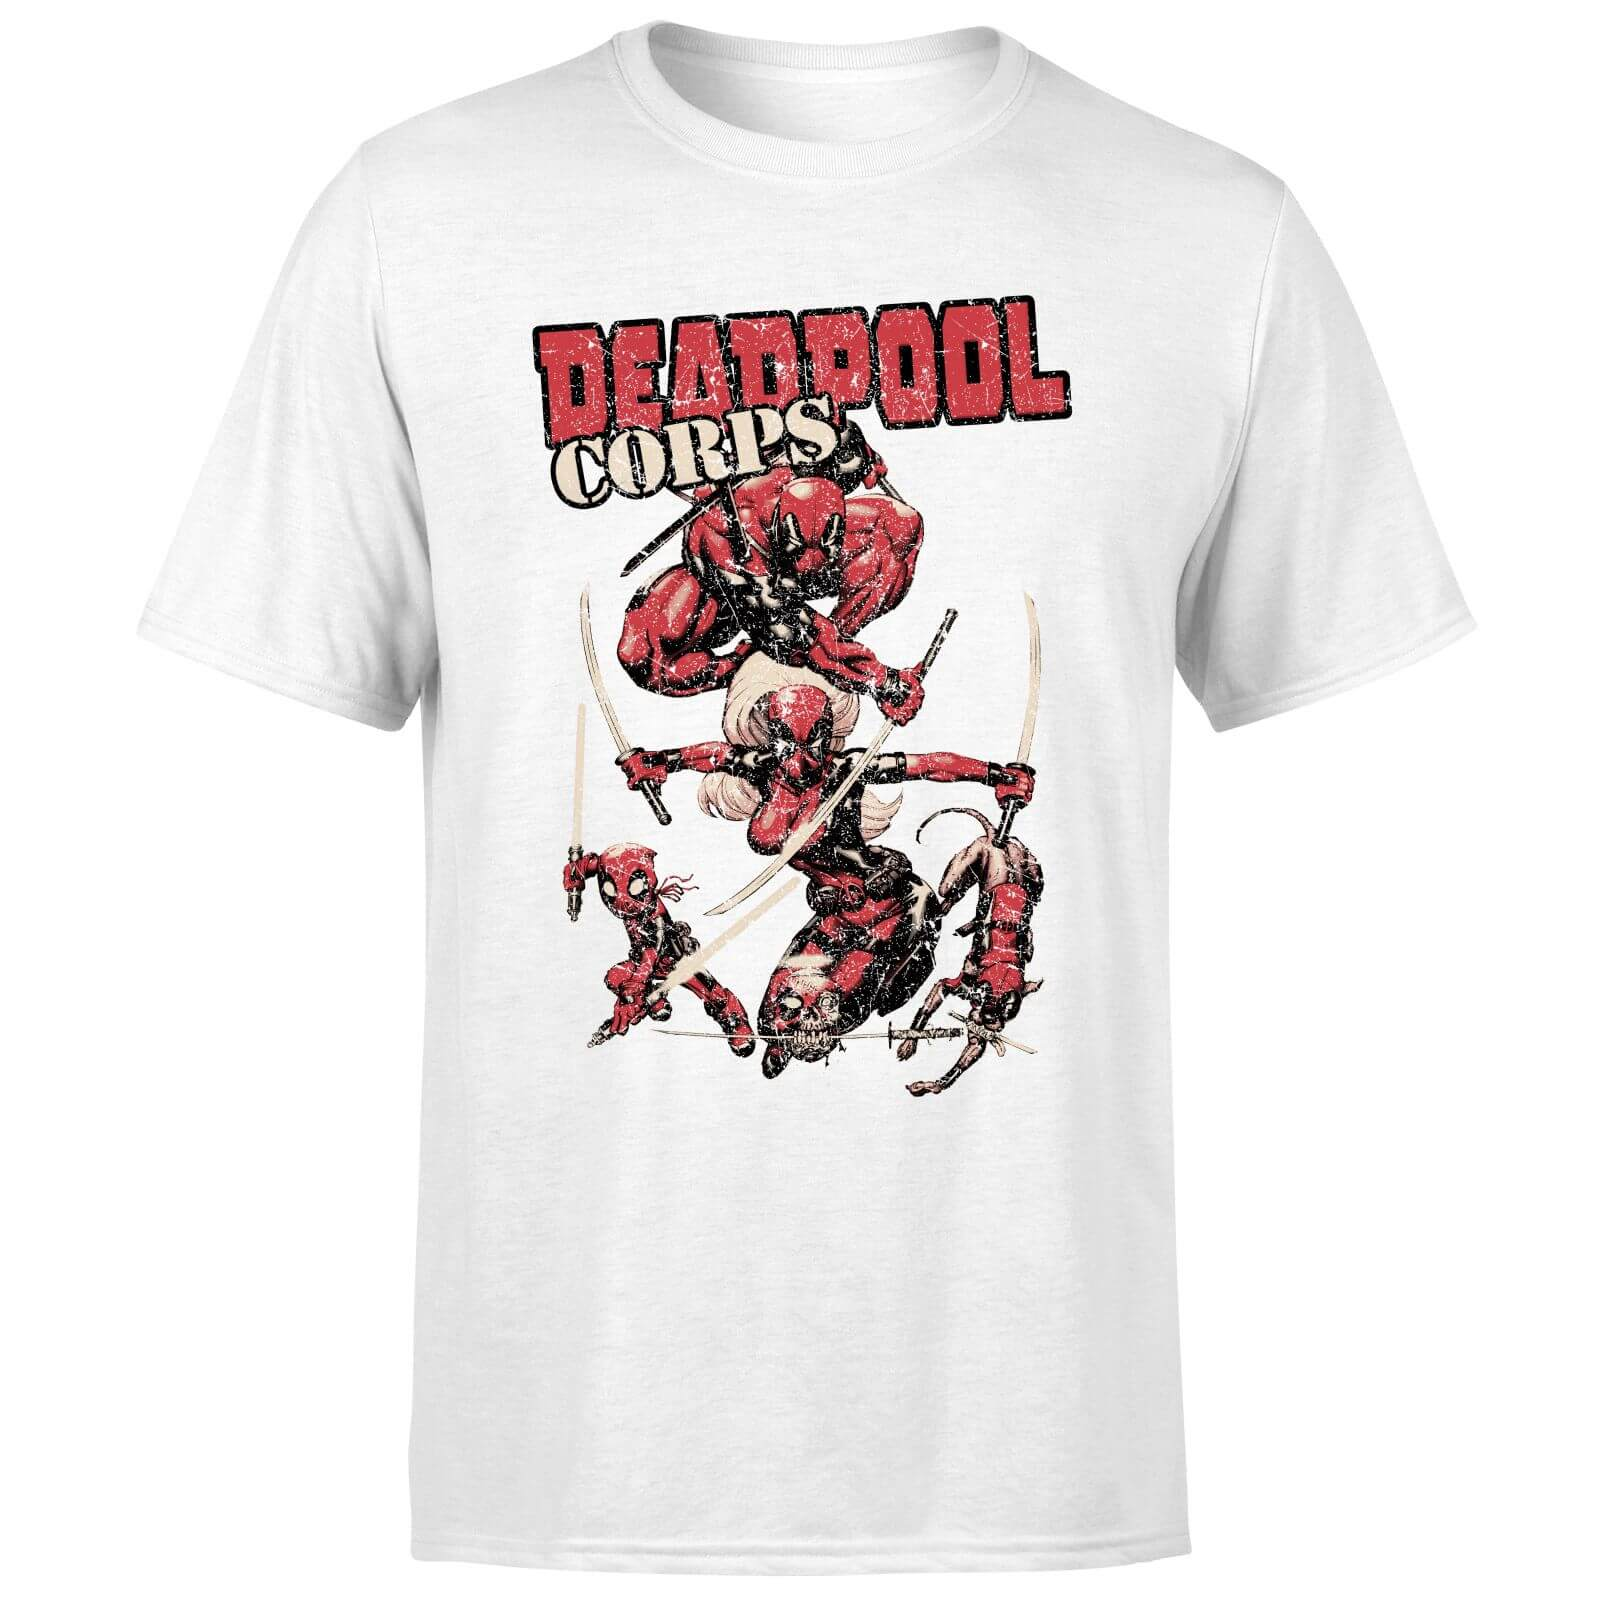 Marvel Deadpool Family Corps Men